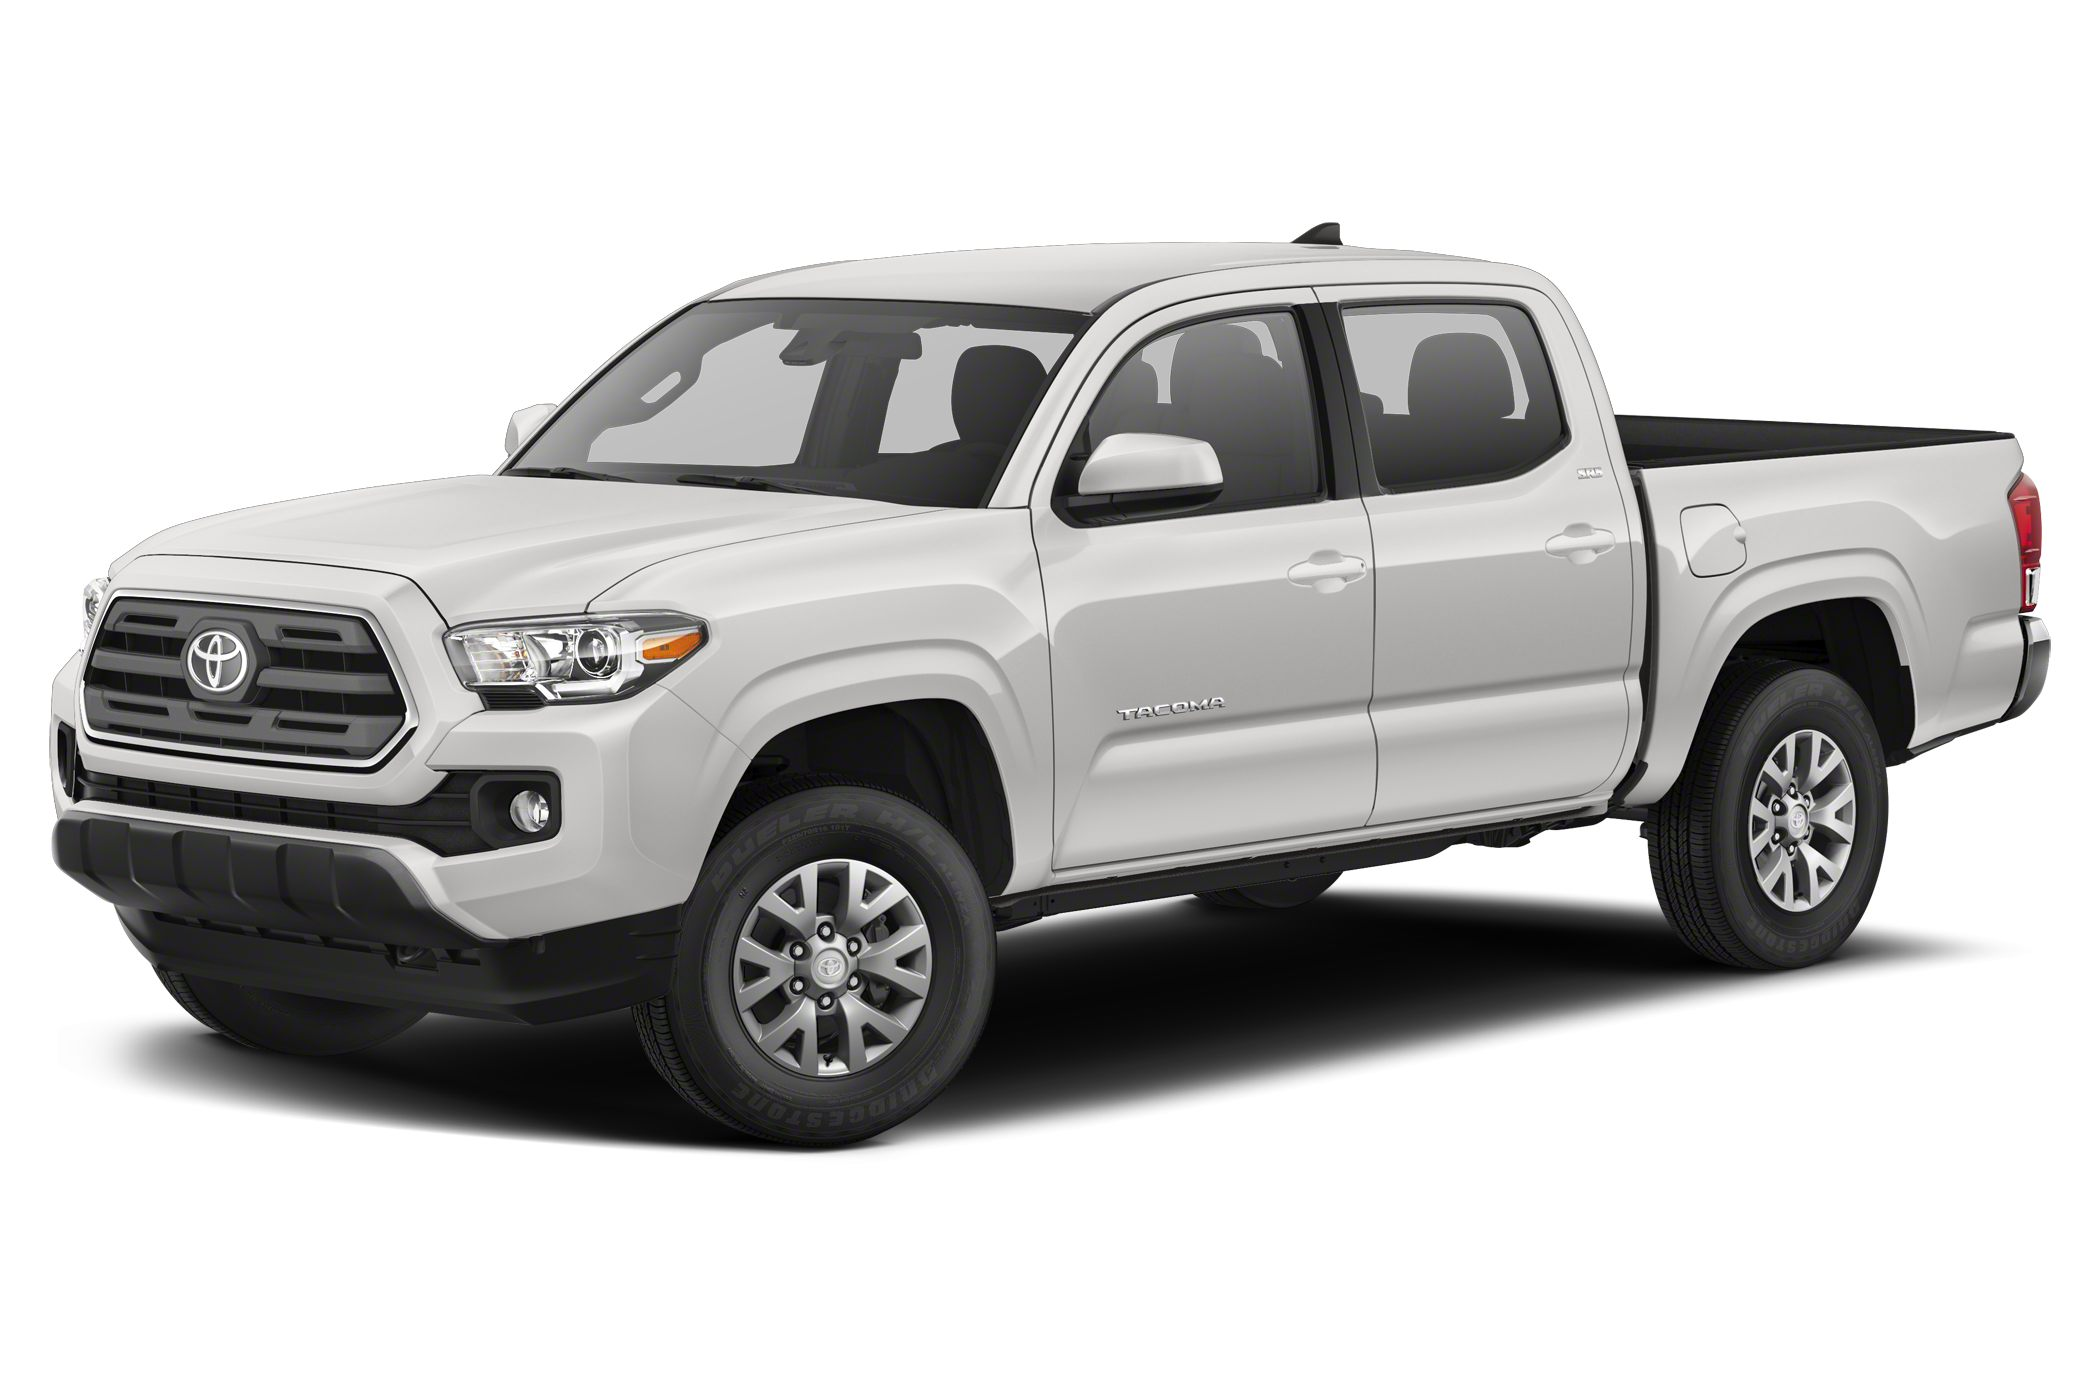 2017 Toyota Ta a SR5 V6 4x4 Double Cab 140 6 in WB Specs and Prices